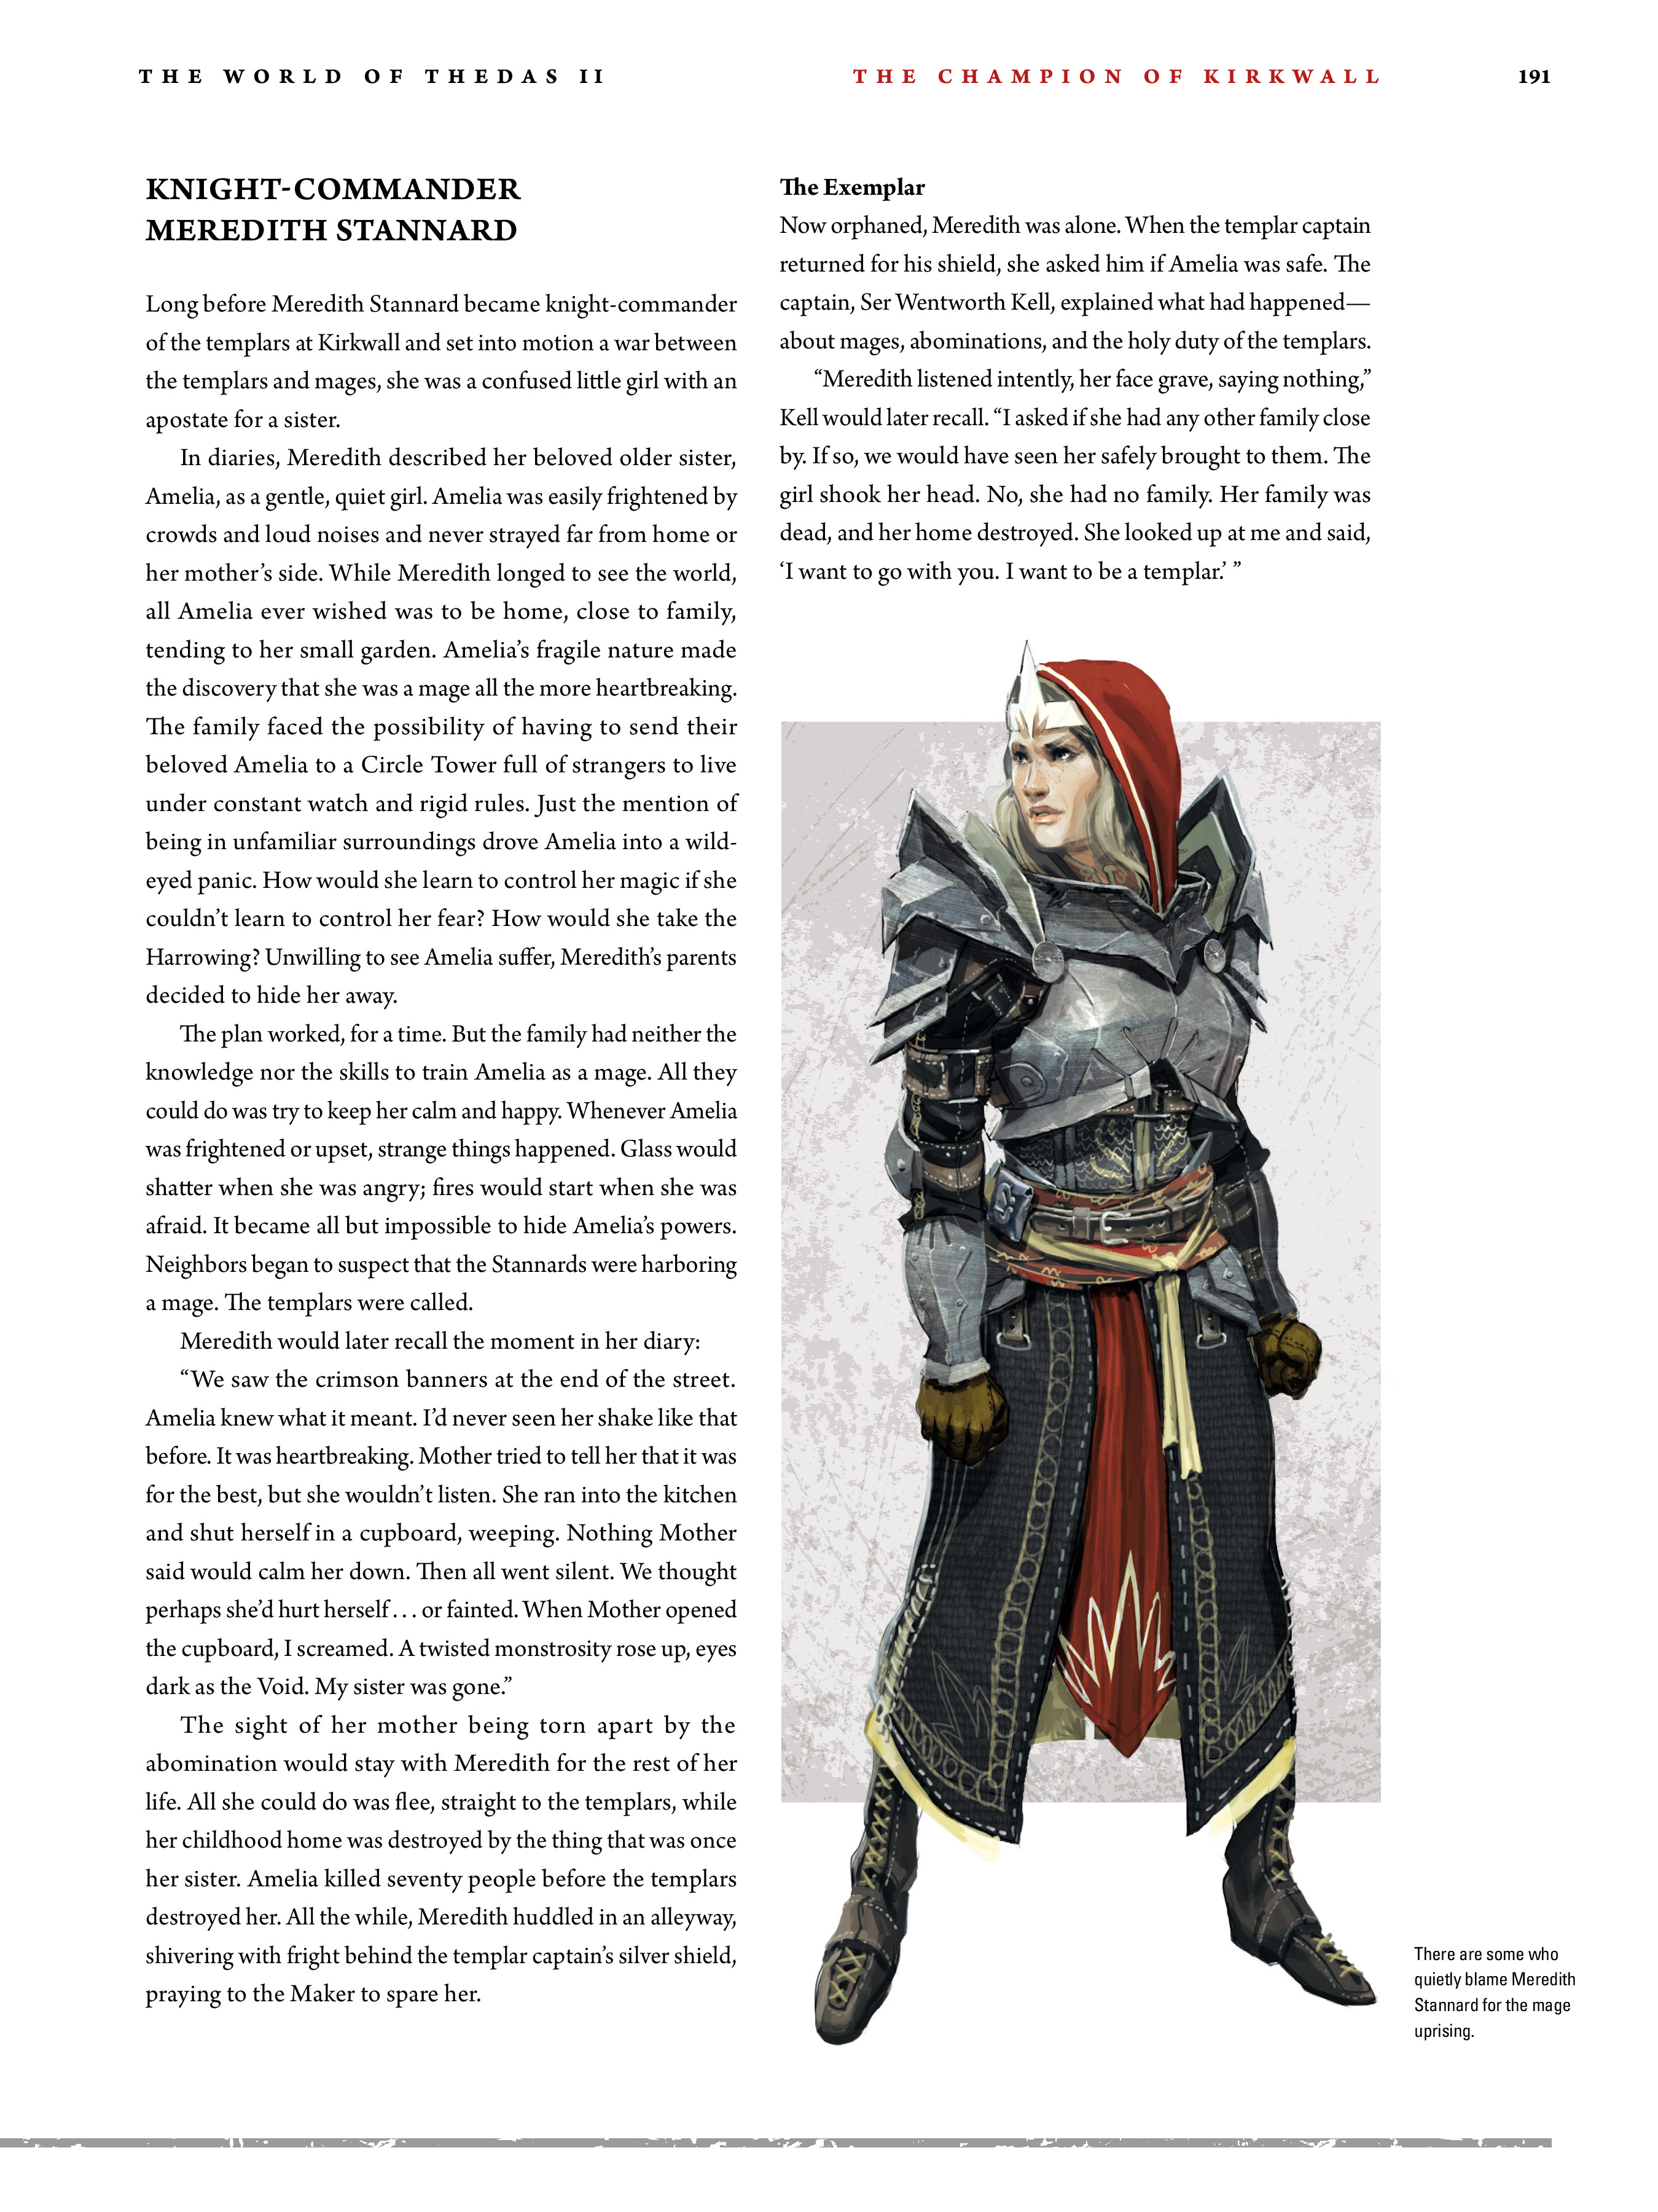 Read online Dragon Age: The World of Thedas comic -  Issue # TPB 2 - 186